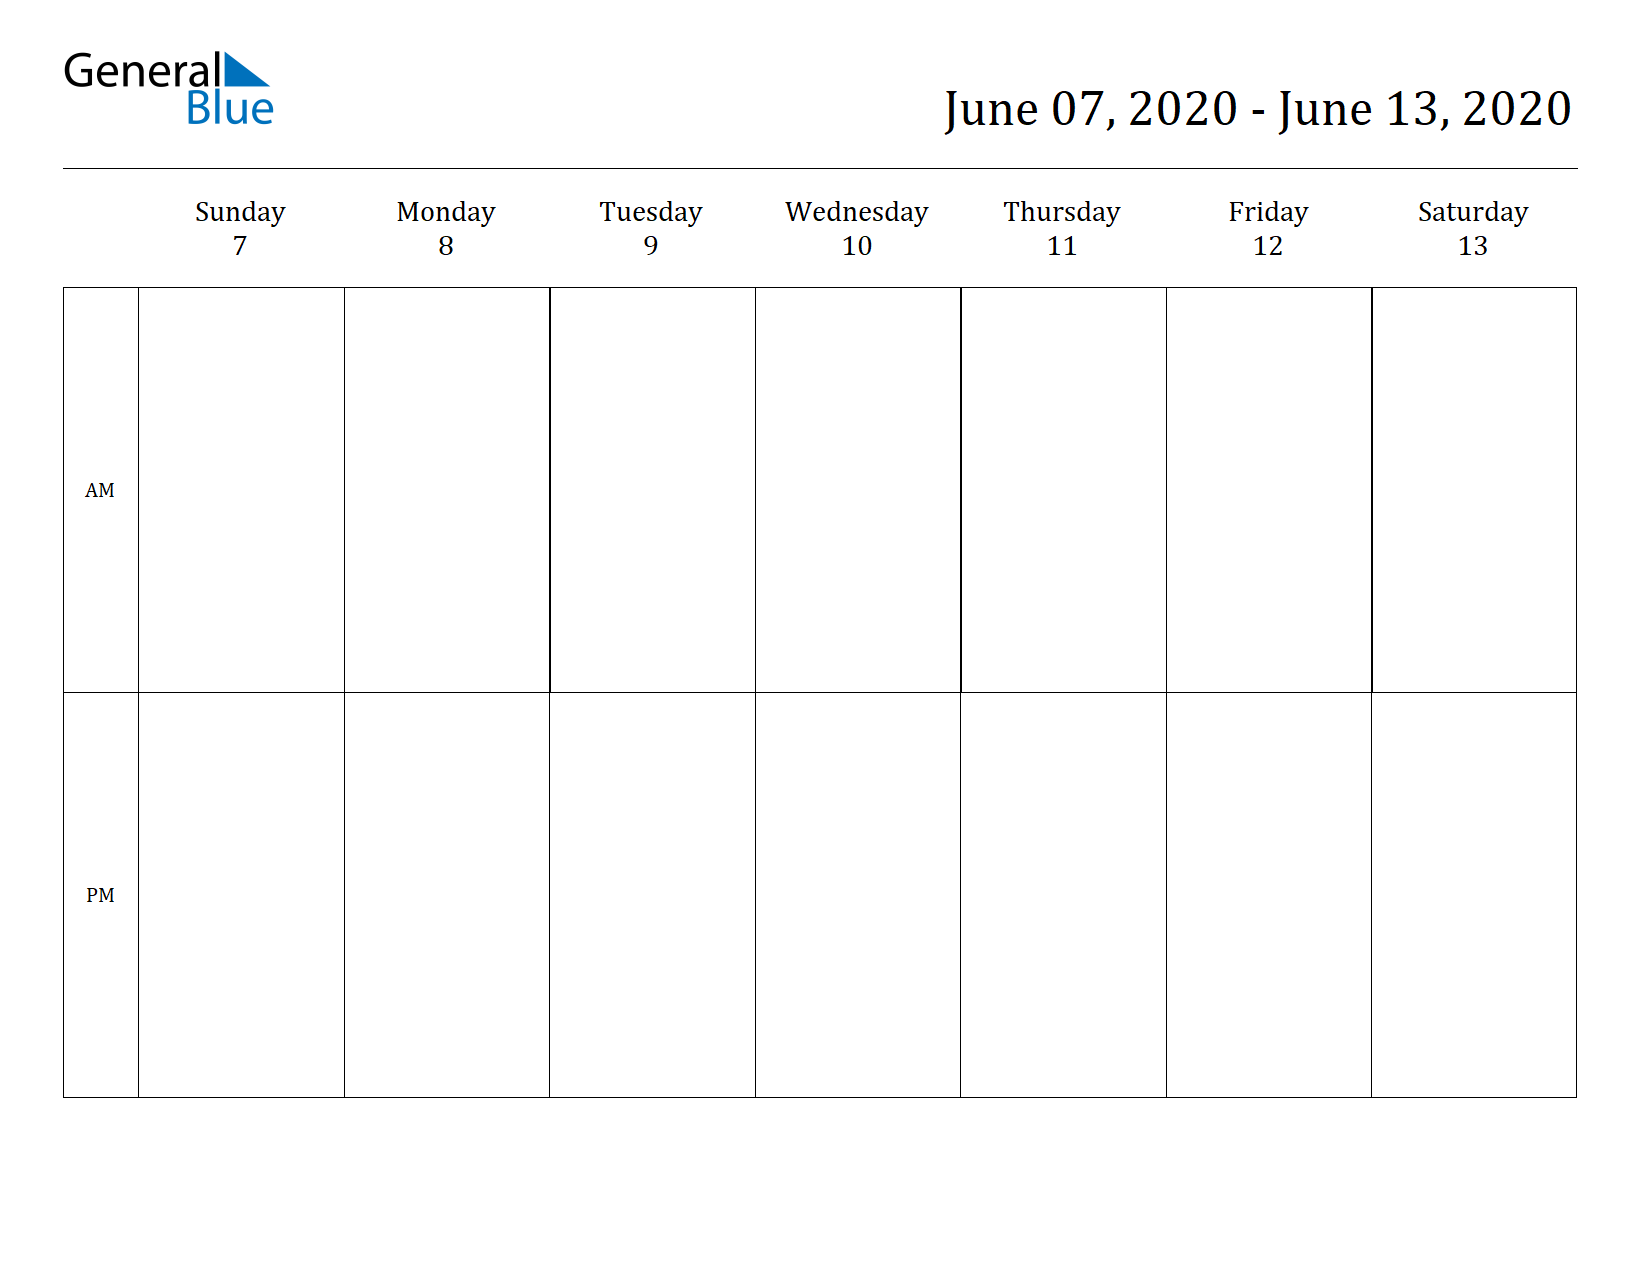 Weekly Calendar for Jun 07, 2020 to Jun 13, 2020